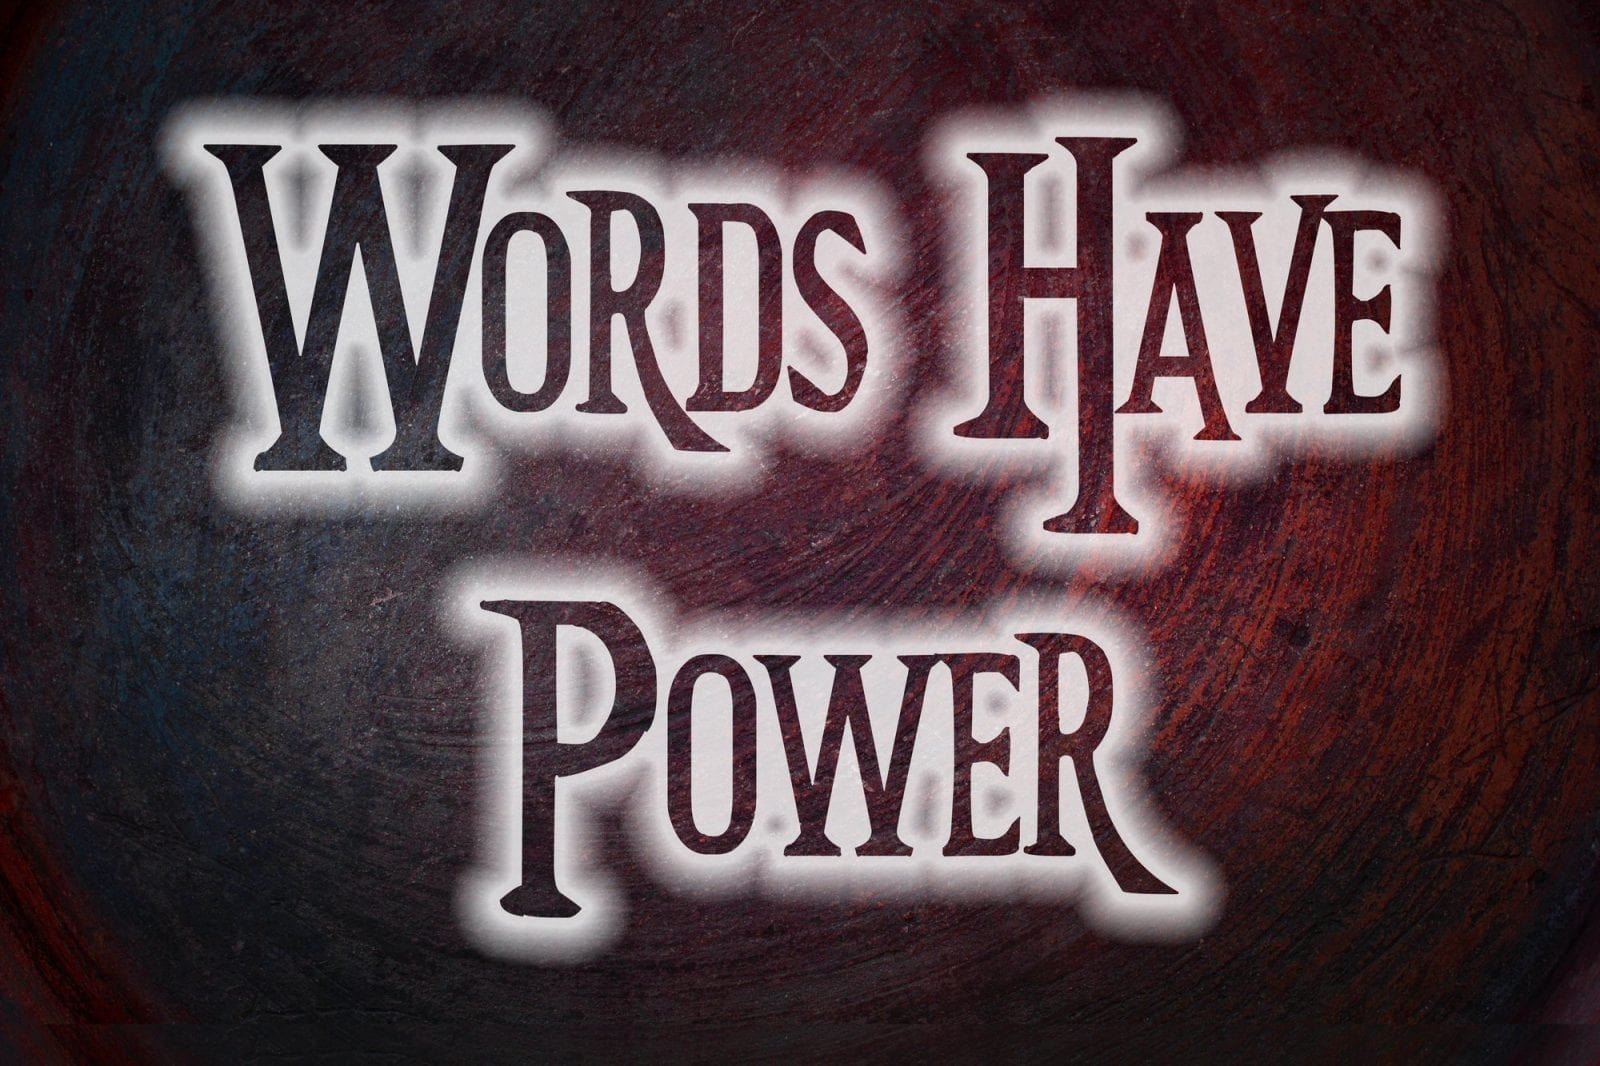 WordsHavePower DP 56313641 l 2015 - How to Say It - Difficult Conversations For Smart, Self-Aware, and Loving Women